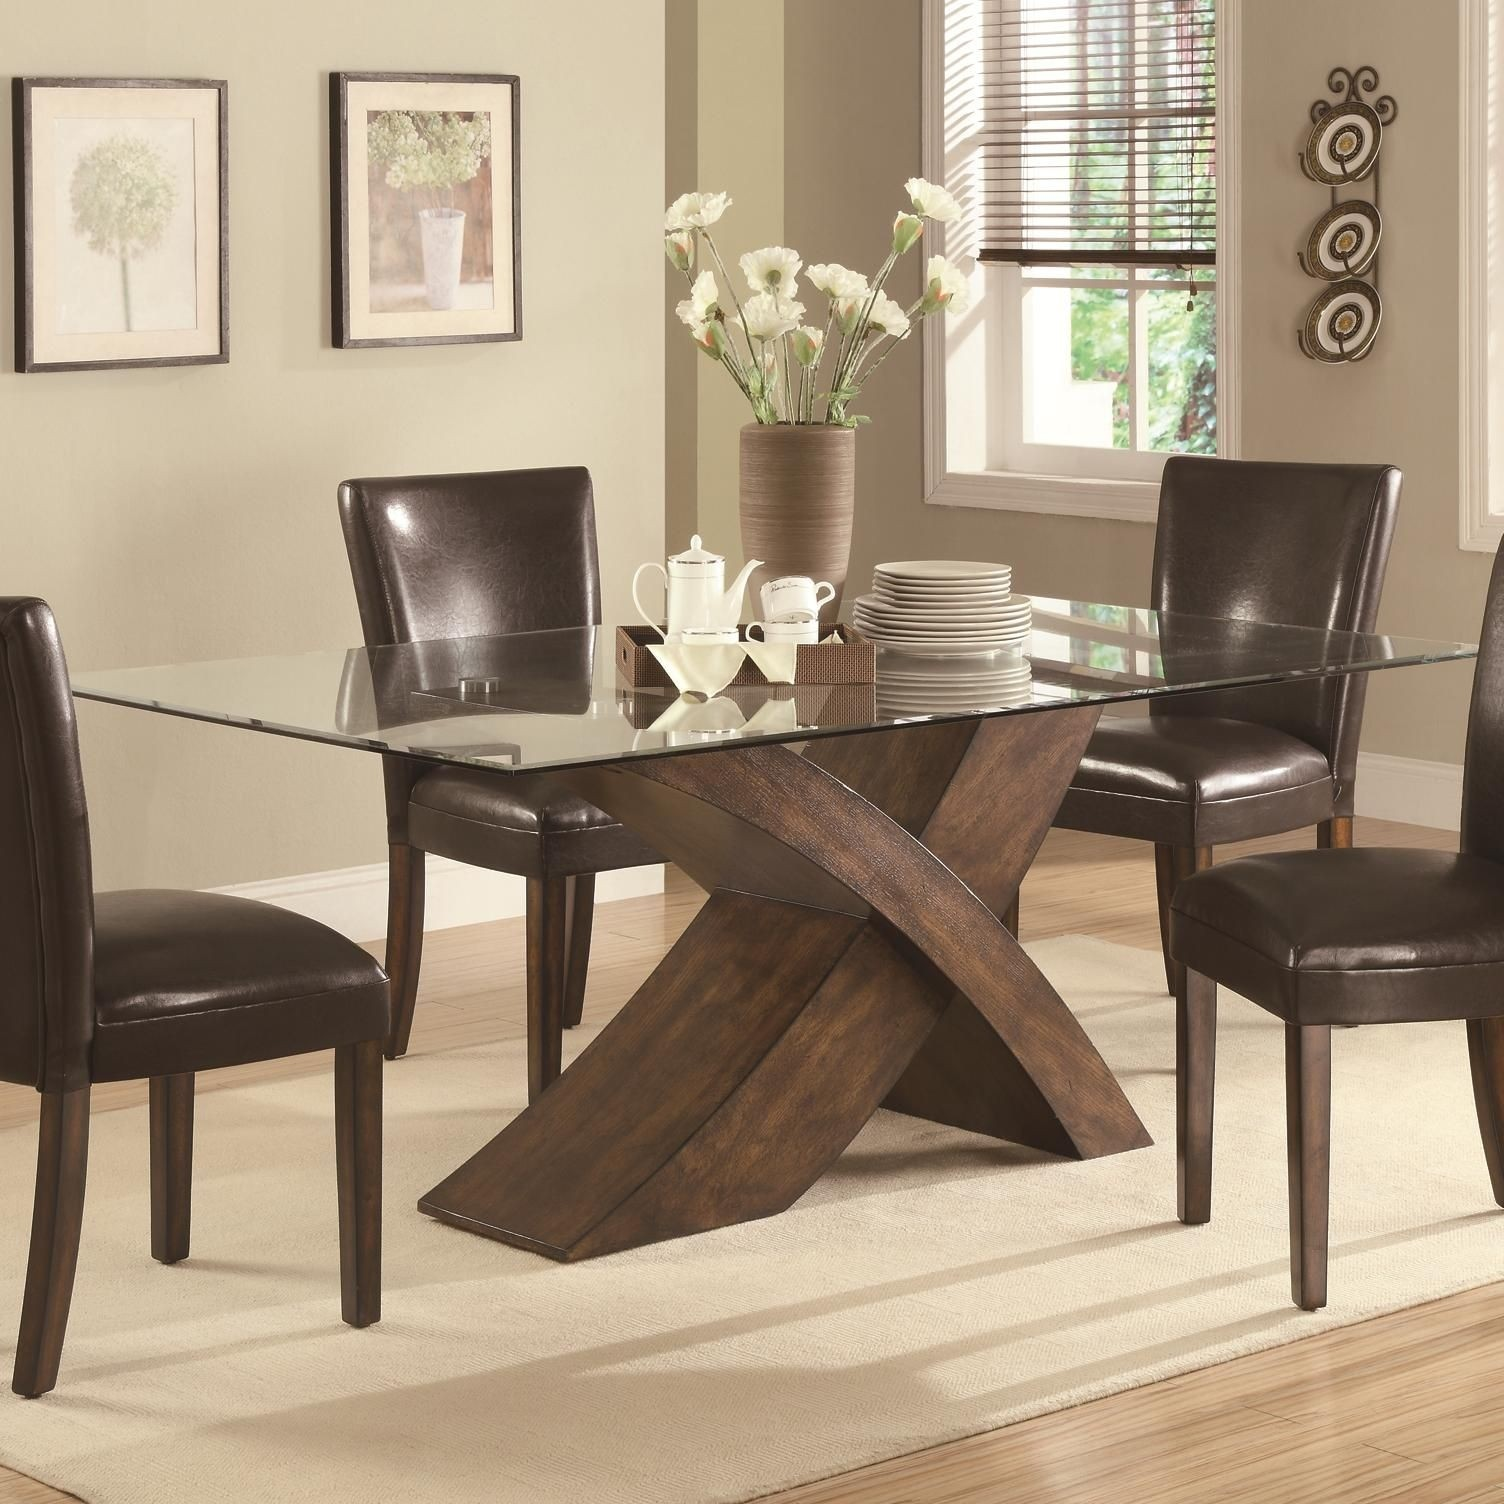 Glass Dining Table With Wooden Legs